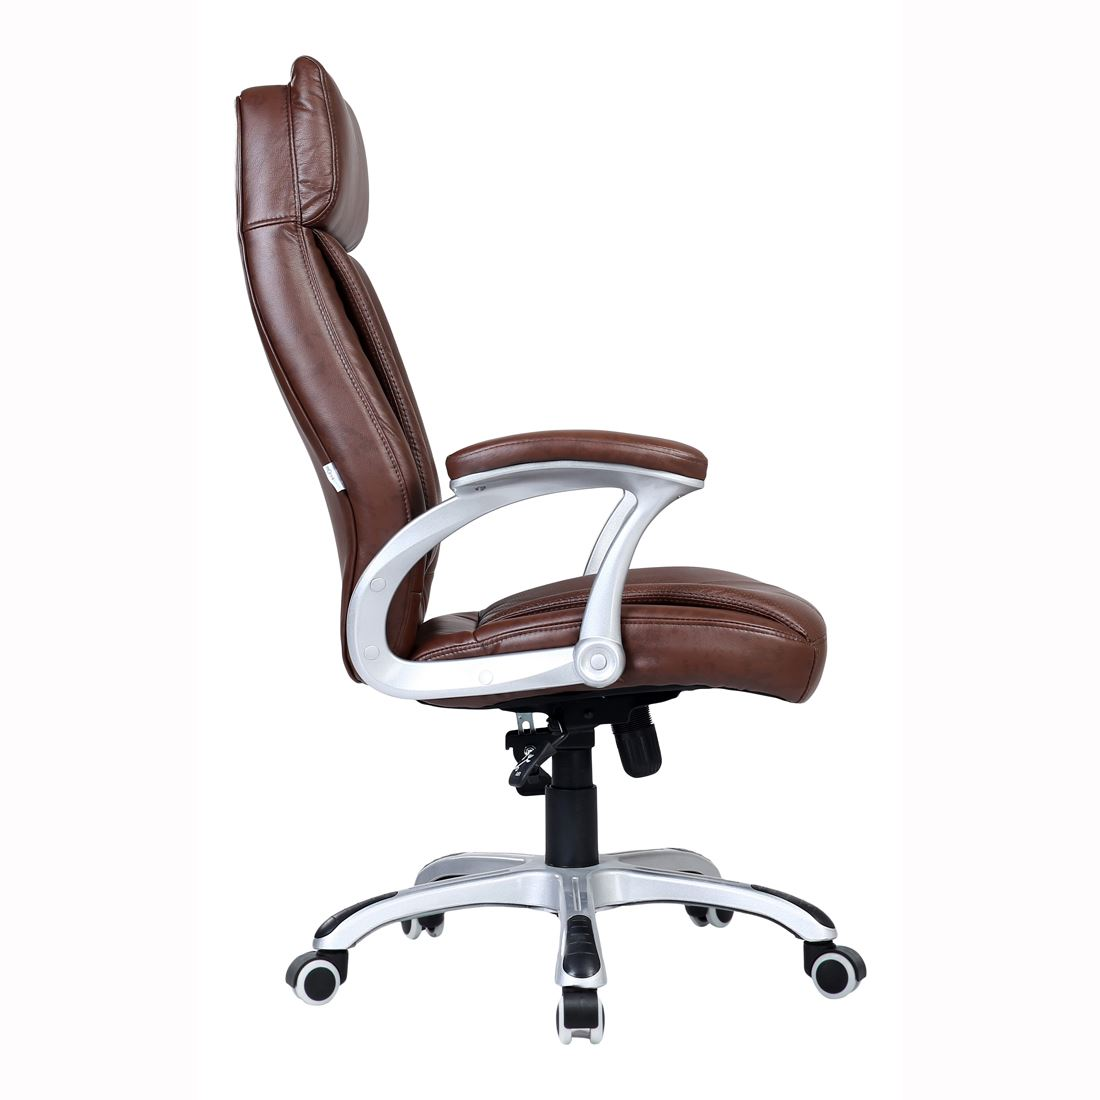 High Back Desk Chair Modini High Back Executive Office Chair Leather Computer